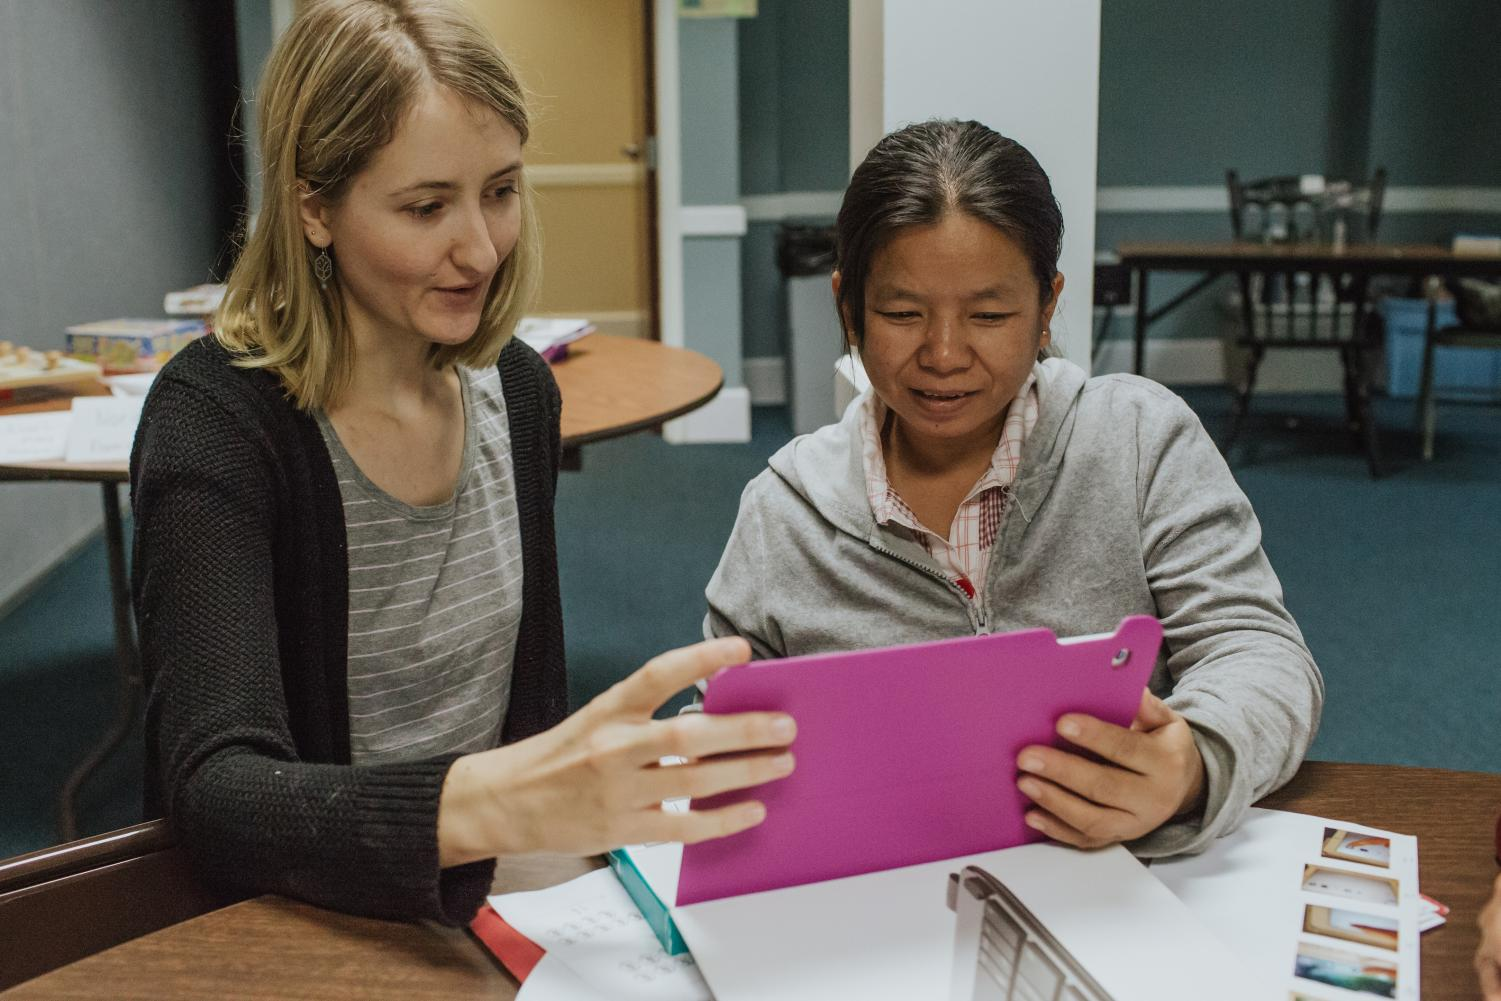 A refugee utilizes World Relief DuPage/Aurora's English as a Second Language (ESL) class to help ease the difficulties of settling into a new culture.